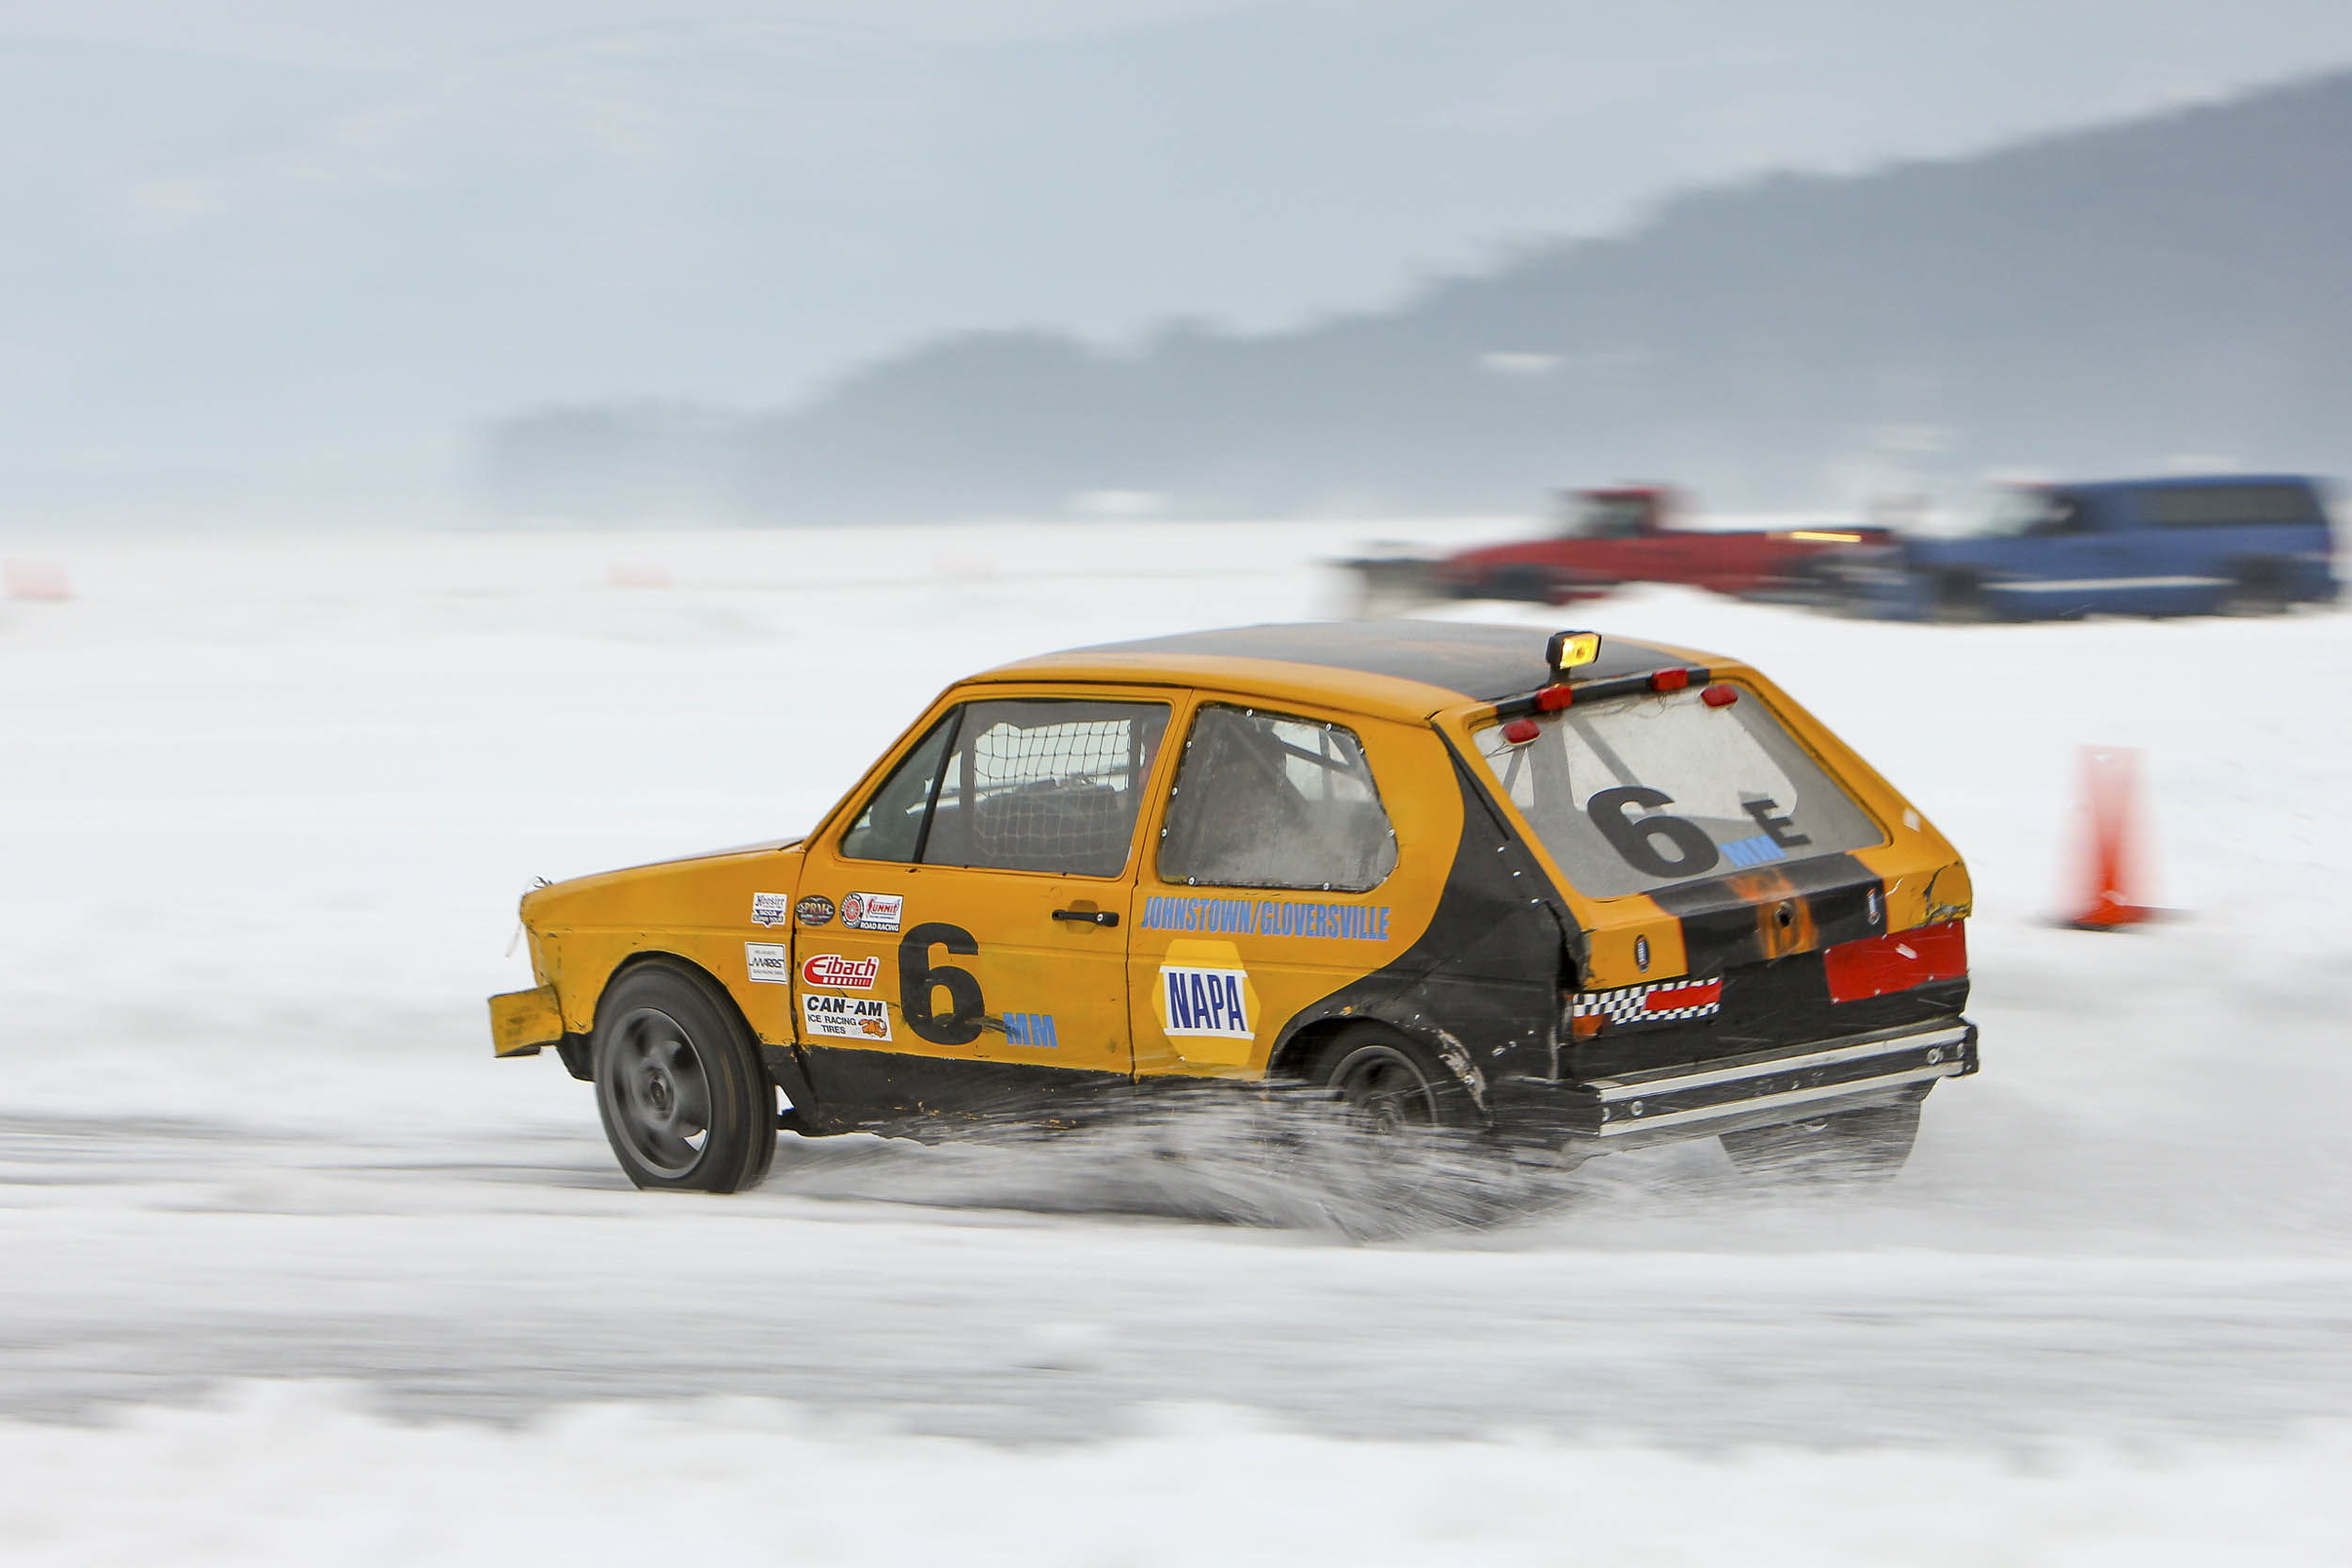 Johnstown/Gloversville ice race car